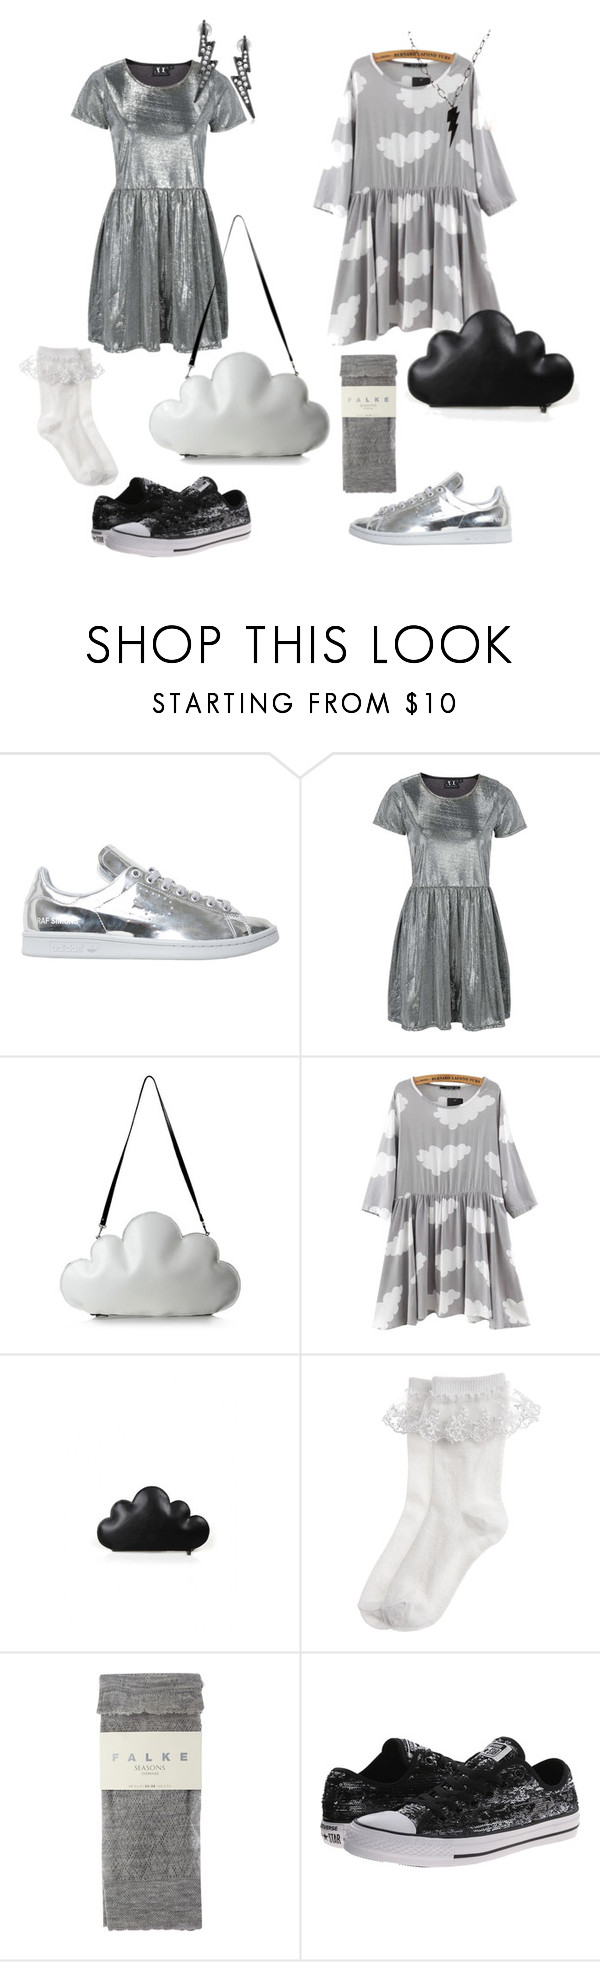 """""""Lightning twins"""" by rosyapple ❤ liked on Polyvore featuring adidas, Topshop, Chicnova Fashion, Monsoon, Falke, Converse, ABS by Allen Schwartz, women's clothing, women's fashion and women"""